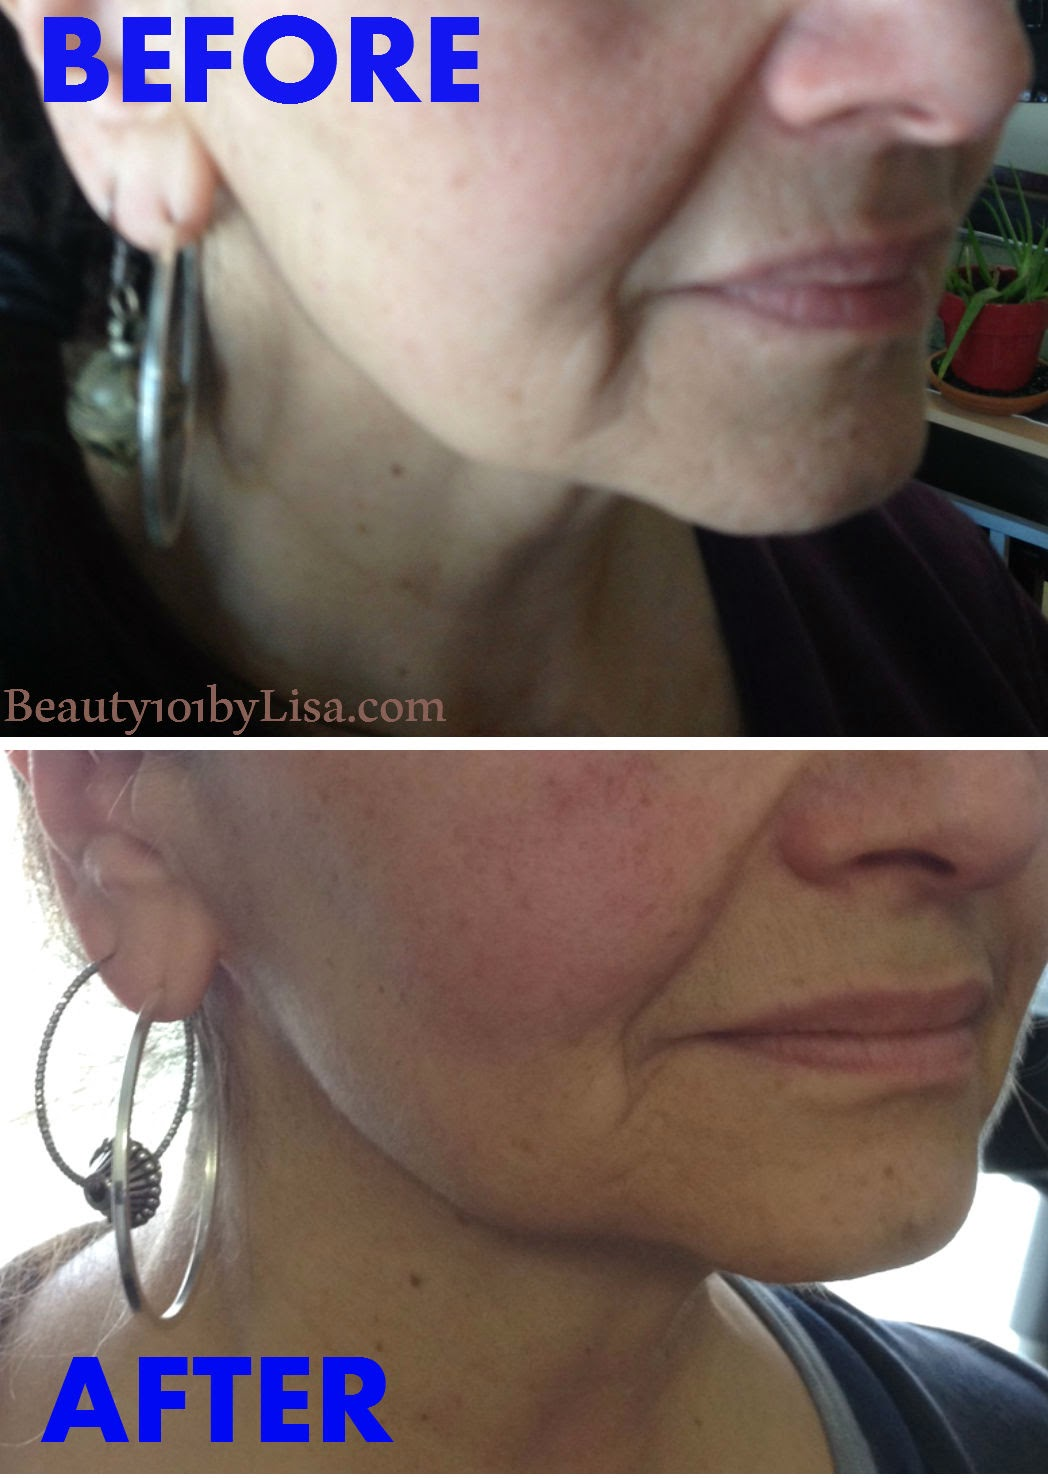 http://www.beauty101bylisa.com/2014/04/botox-in-bottle-before-after-results.html